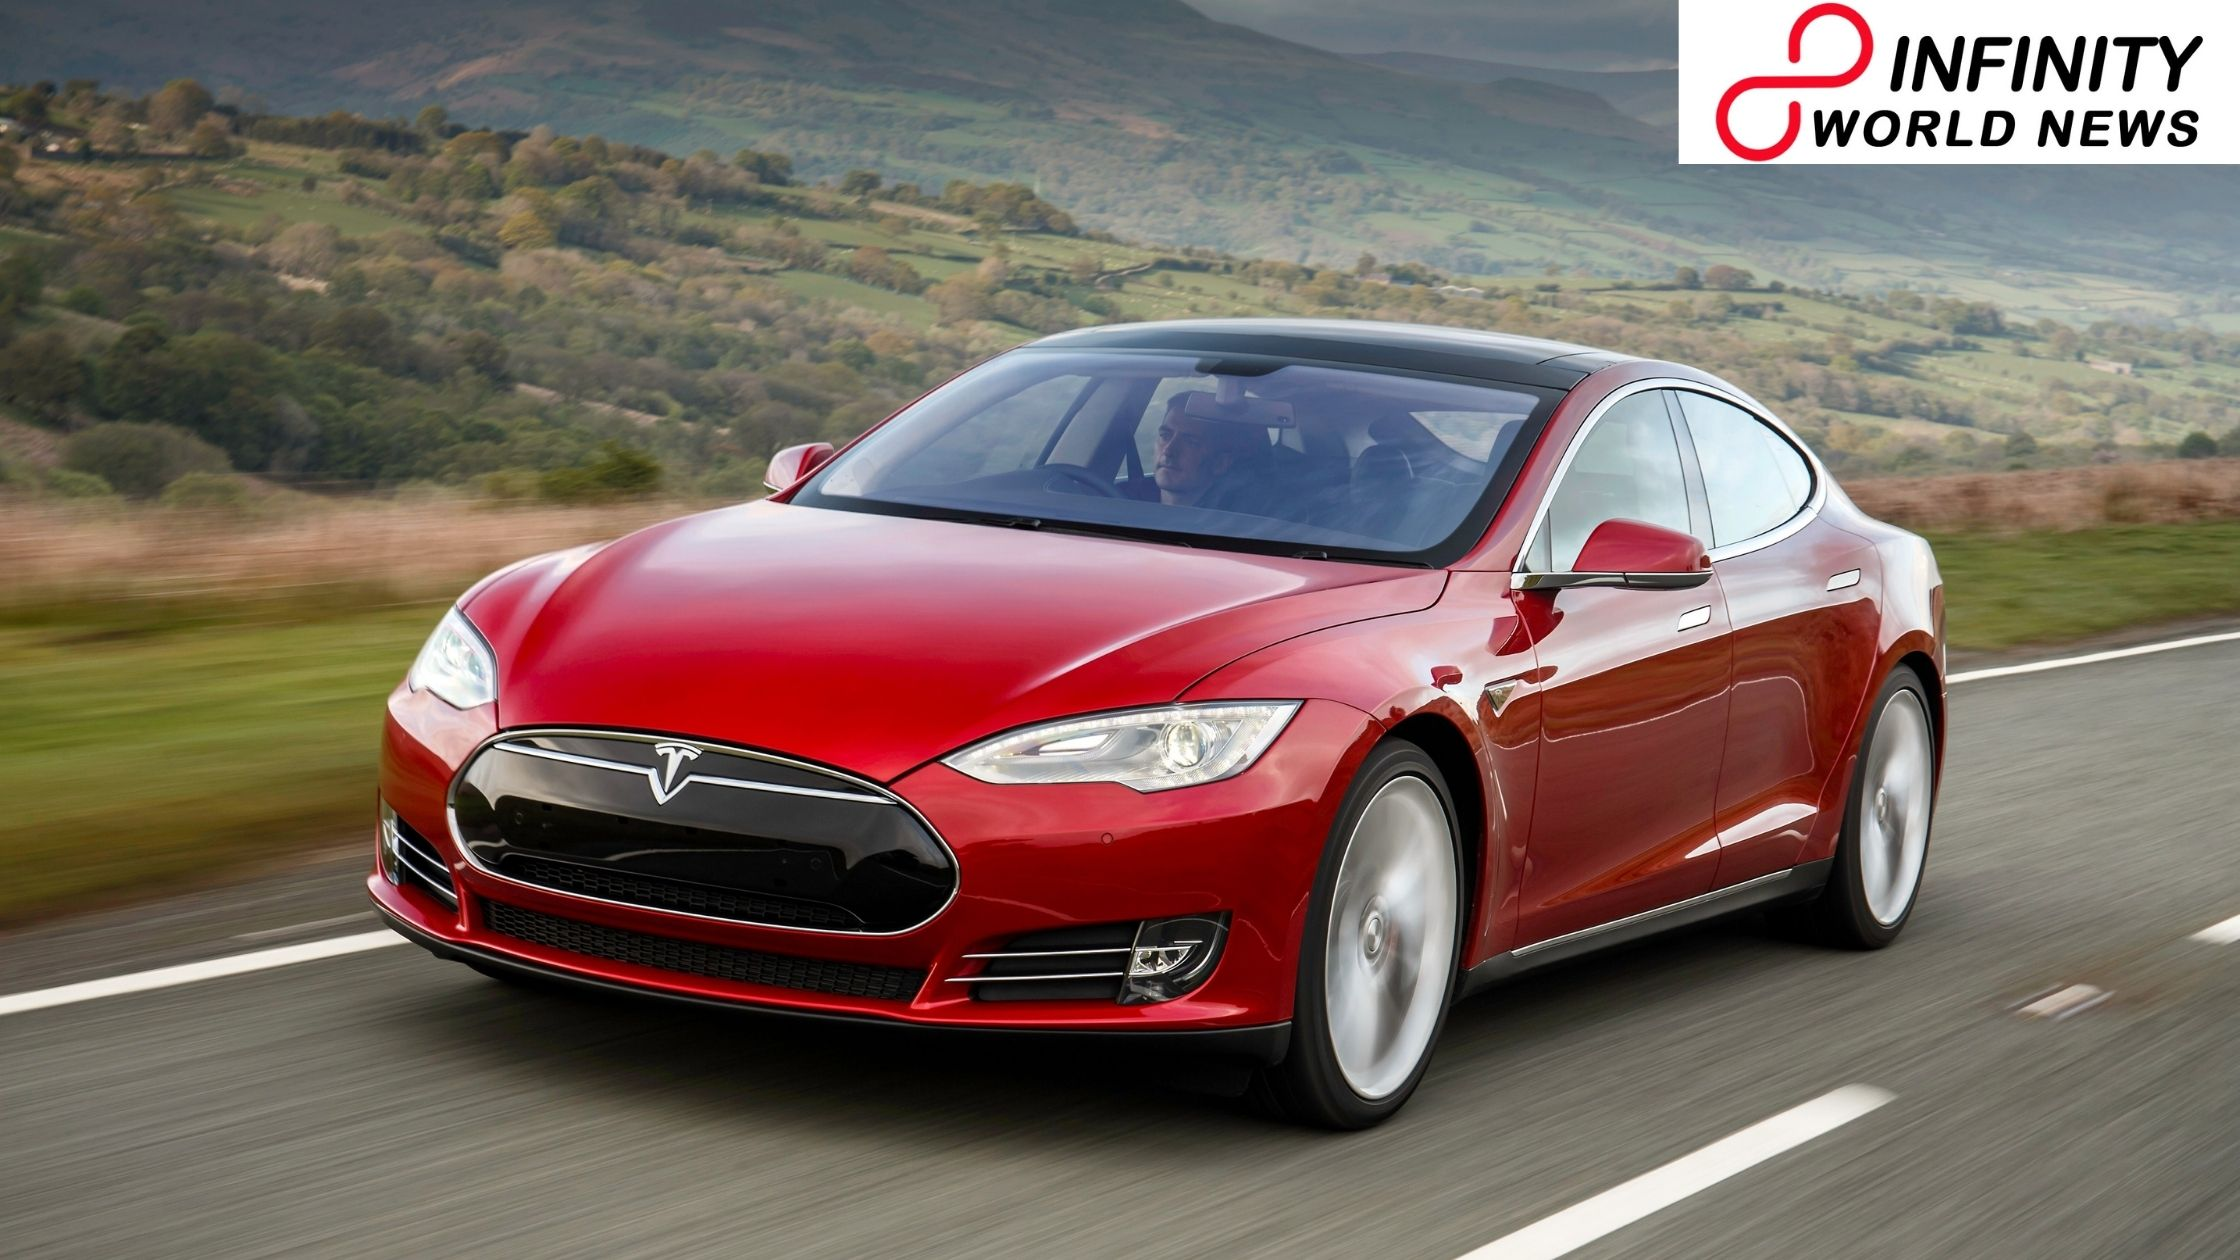 Tesla Incorporation Papers into Karnataka on January 8 Surface Online